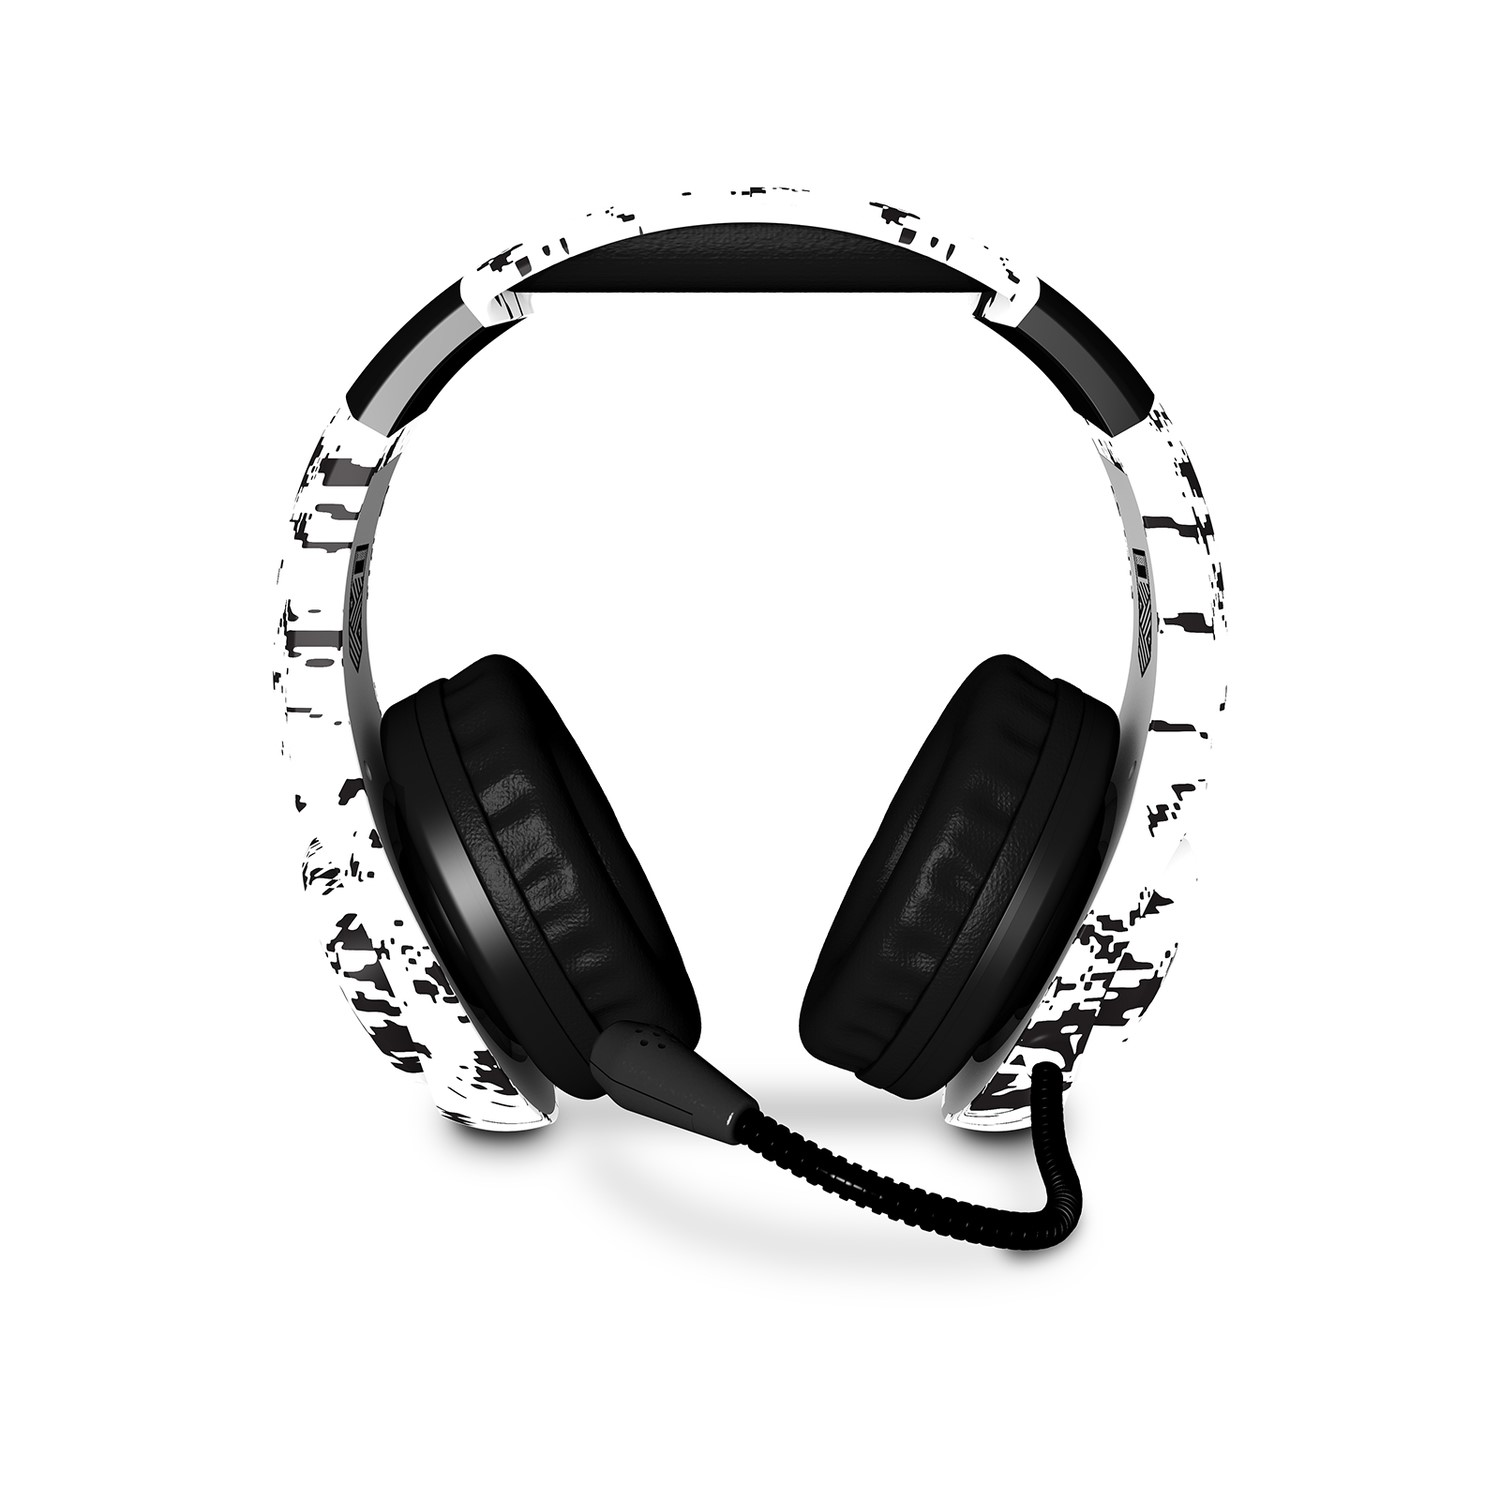 XP Conqueror Stereo Gaming Headset